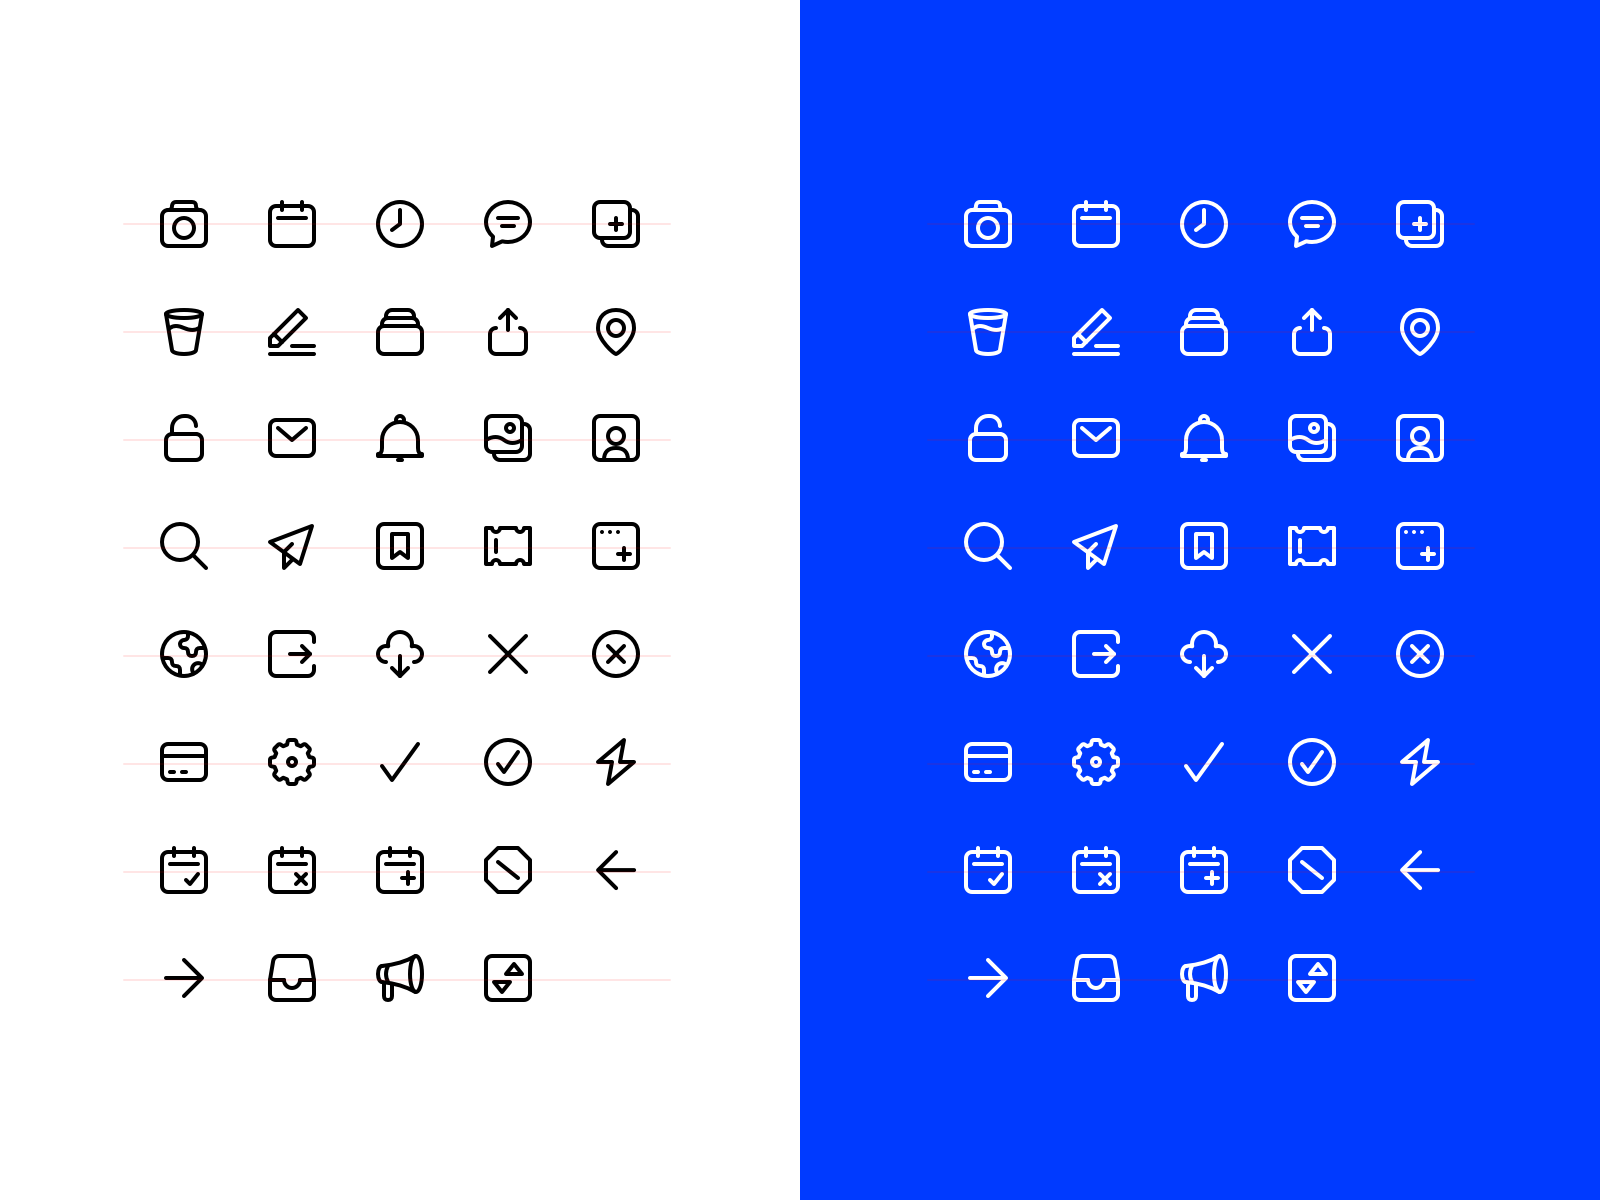 📷📆🕗💬🔲 2px icons retina icons 24x24 small icons icons icon set icon design user experience user interface ux ui design